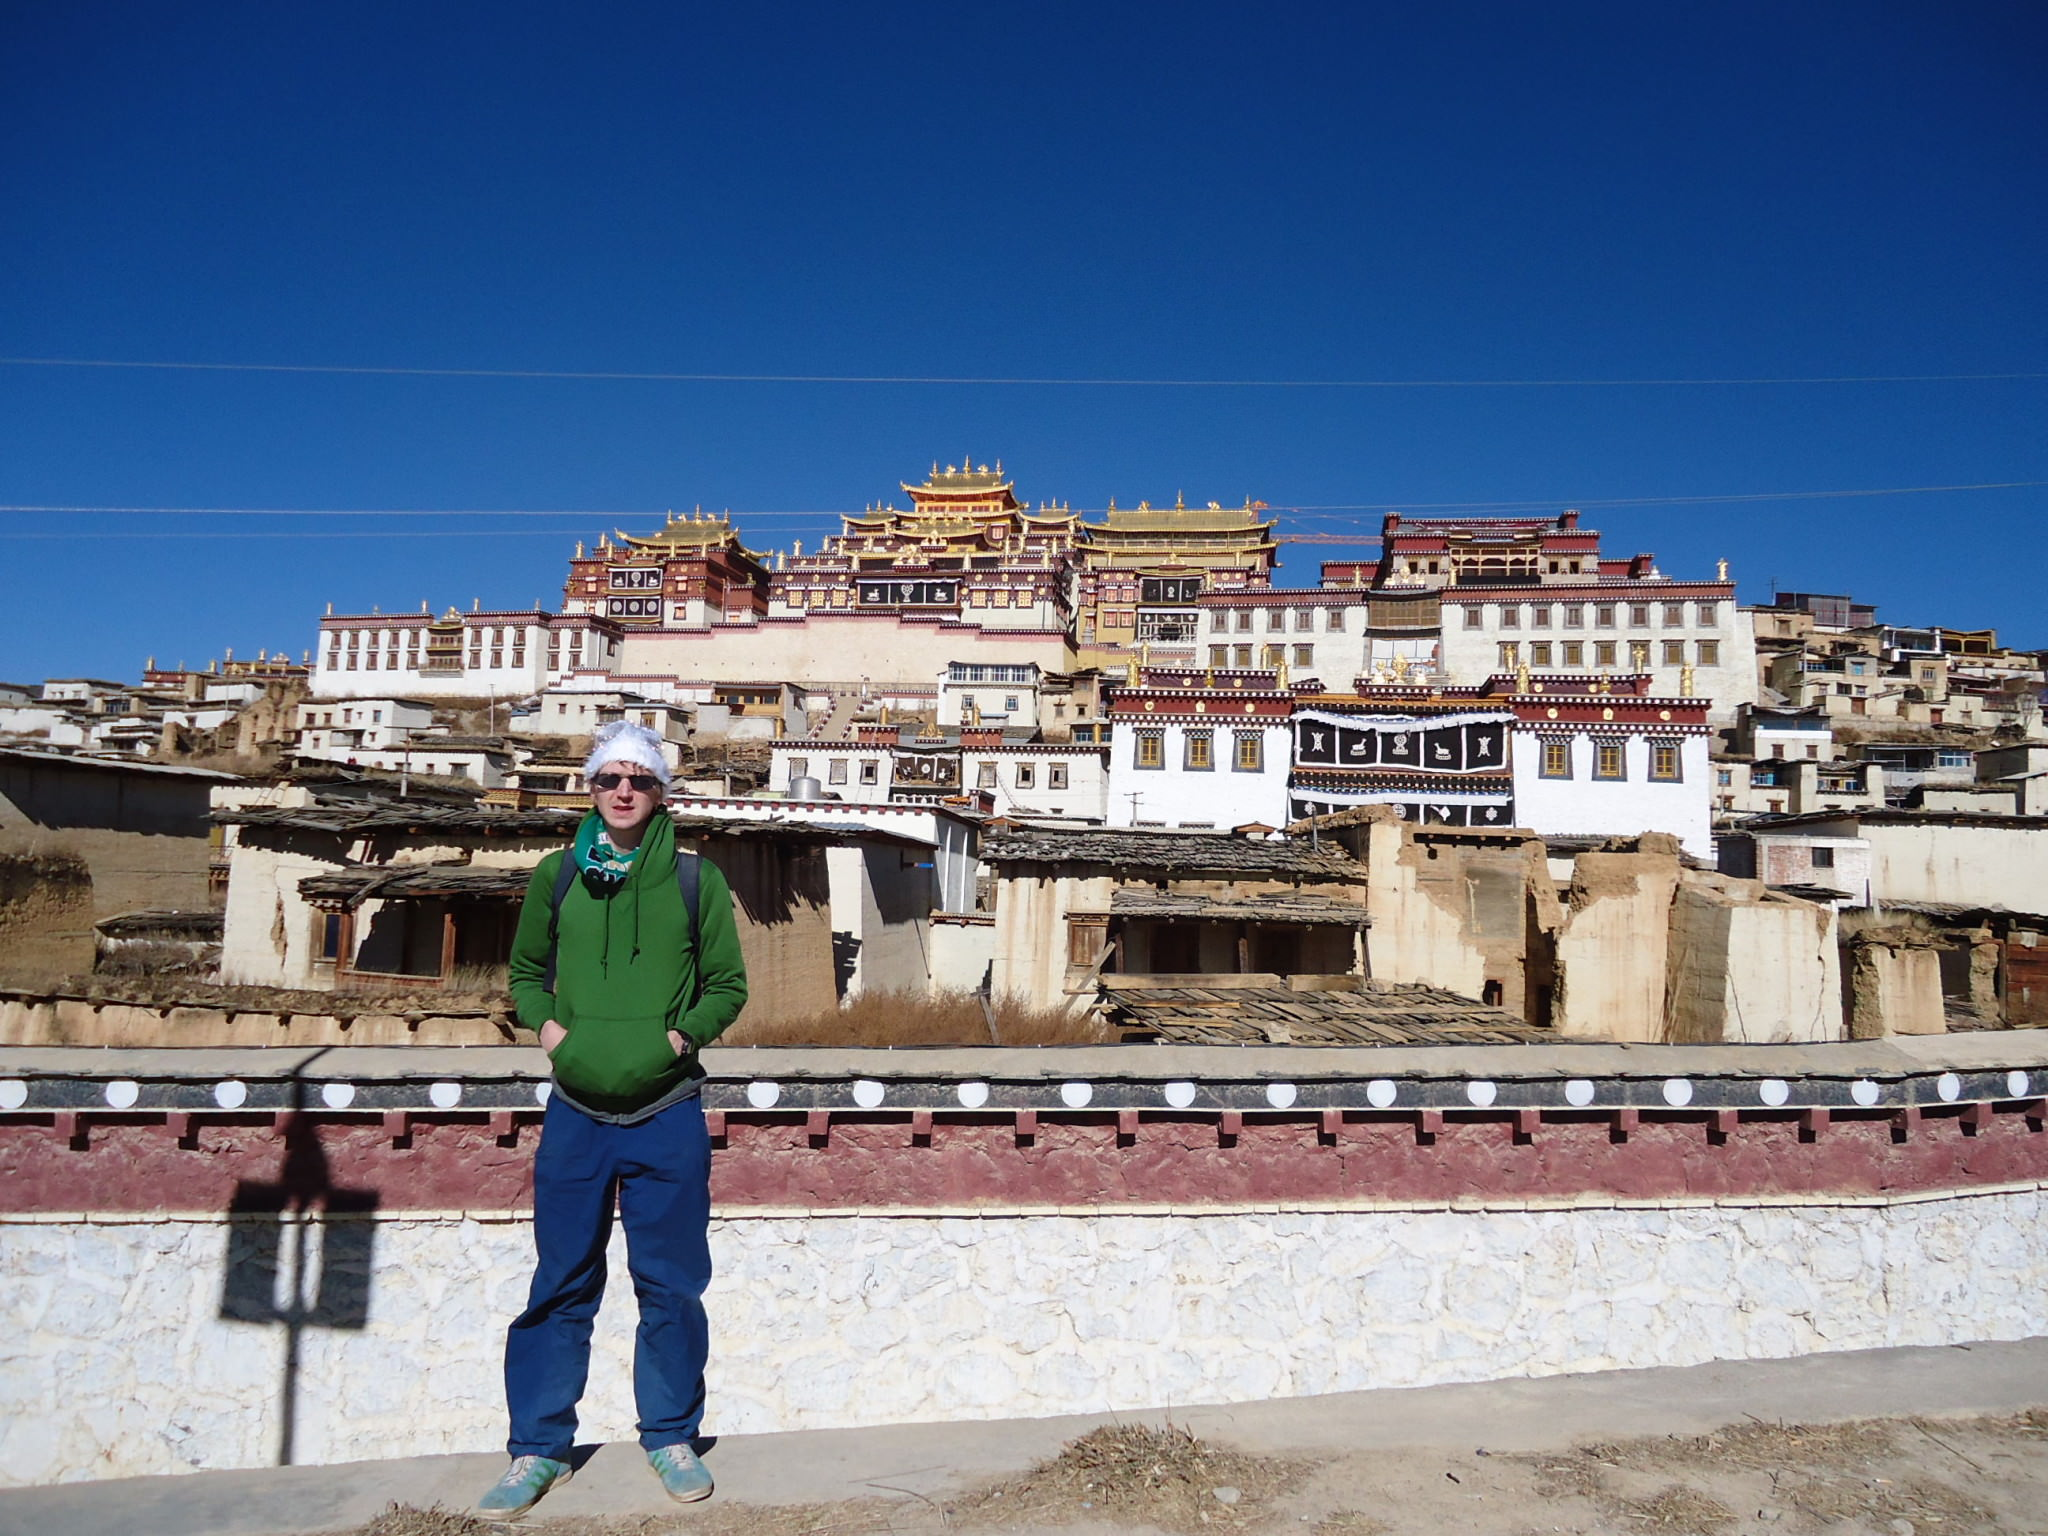 Jonny Blair at the The Ganden Sumtseling Gompa 300 year old Tibetan Monastery in Yunnan, China